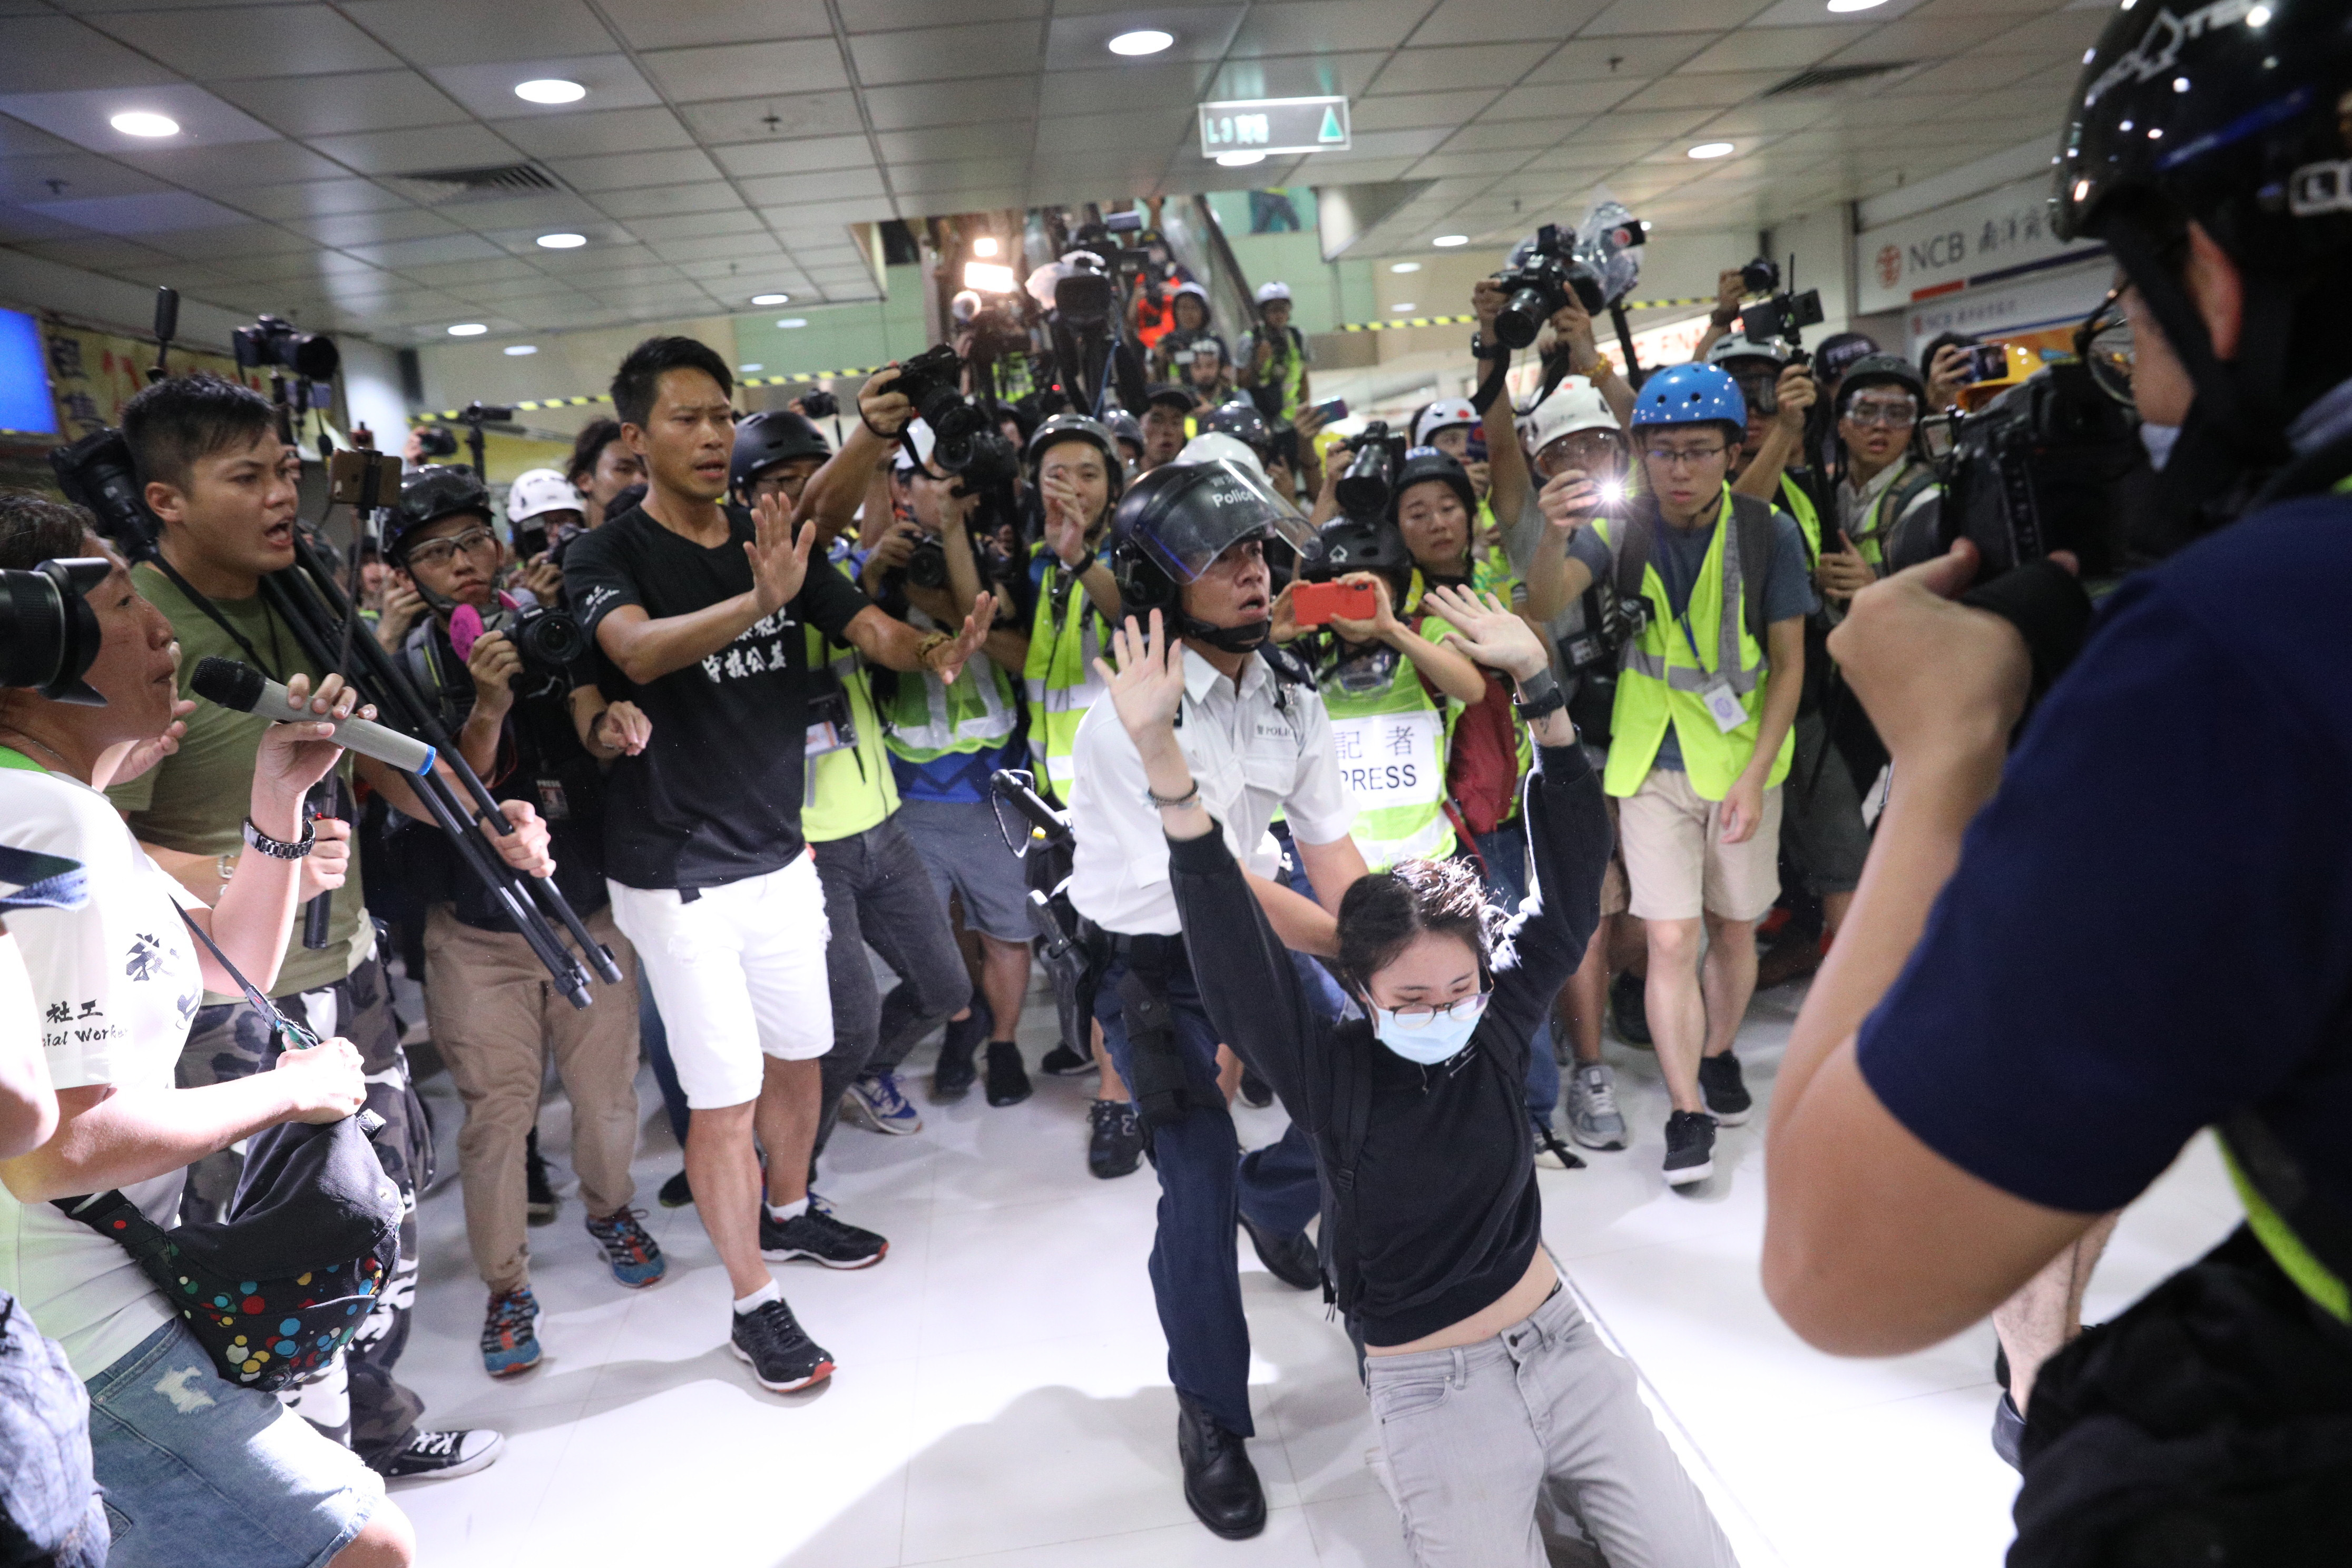 A woman is arrested by policeman while anti-extradition bill protesters march during a rally in Shatin, Hong Kong, China, 14 July 2019. Spurred by the momentum of the anti-extradition movement, the protesters are demanding the complete withdrawal of the extradition bill, which would have allowed the transfer of fugitives to mainland China, and unconditional release of all arrested protesters among other demands.Anti-extradition bill protesters rally in Shatin, Hong Kong, China - 14 Jul 2019